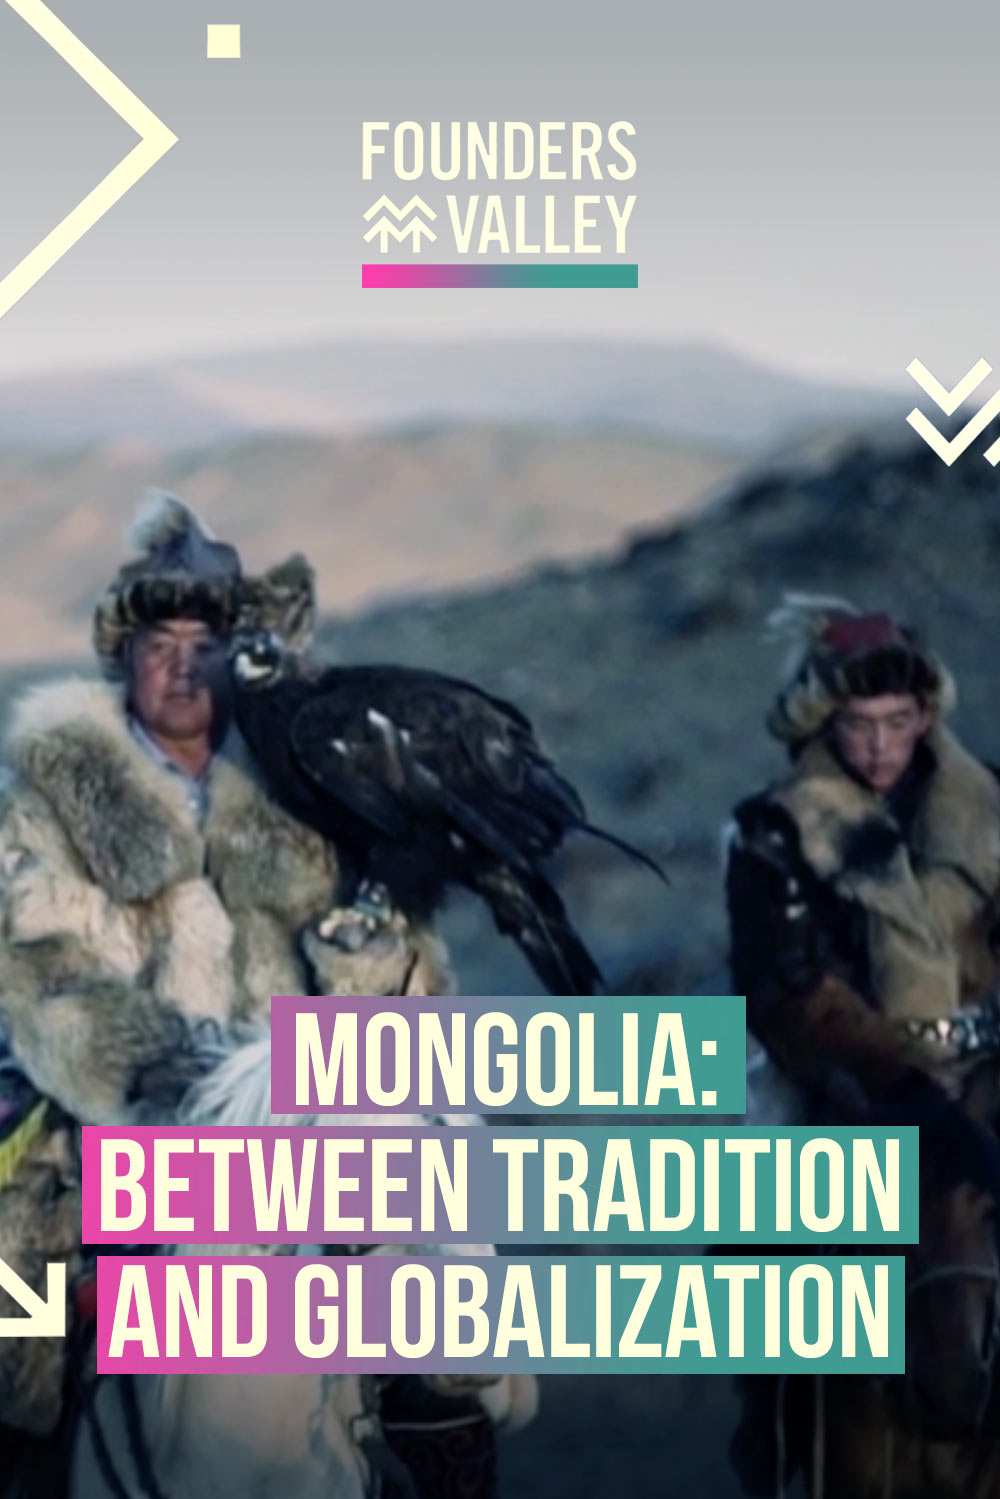 Founders' Valley: Between Tradition and Globalization, Mongolia